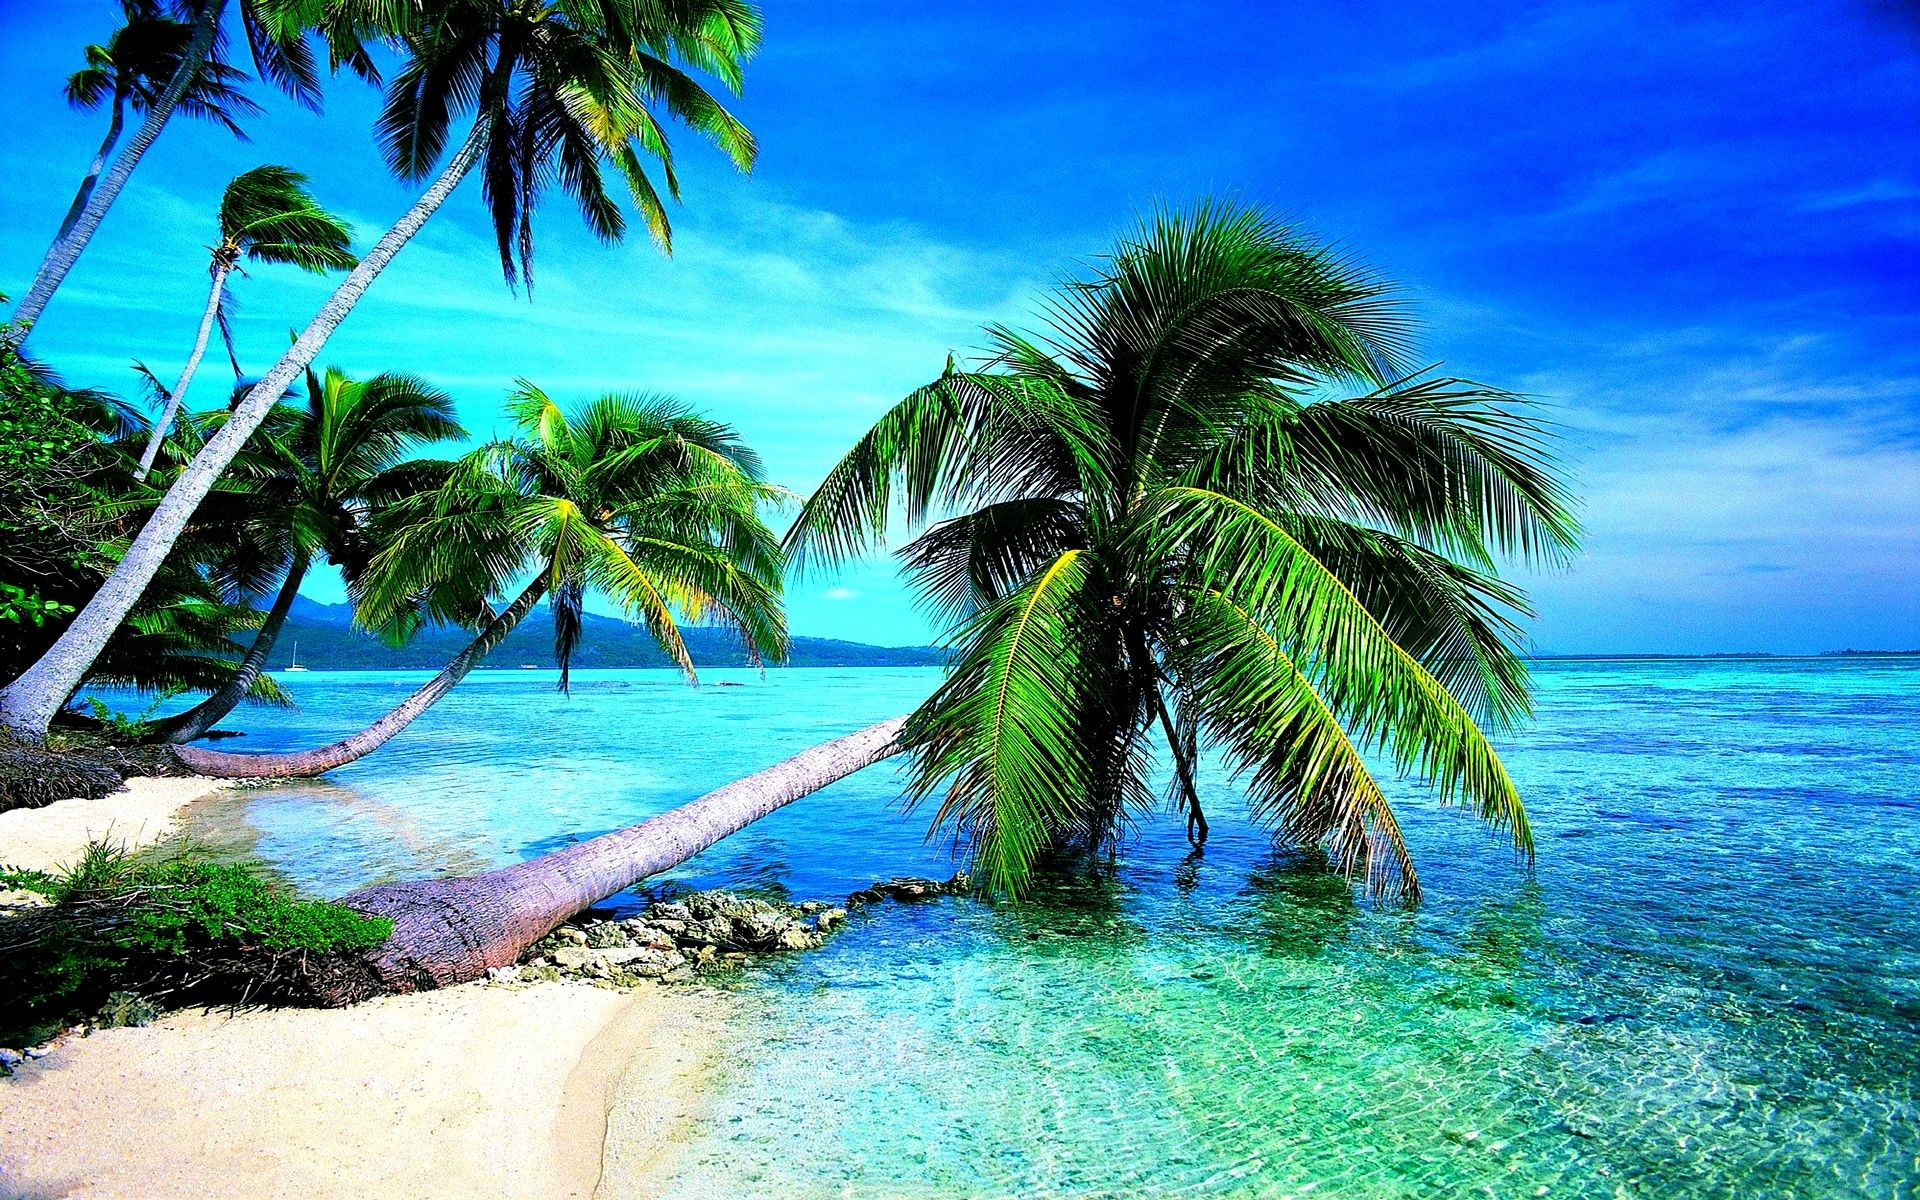 Hd Tropical Island Beach Paradise Wallpapers And Backgrounds: Desktop Backgrounds Tropical